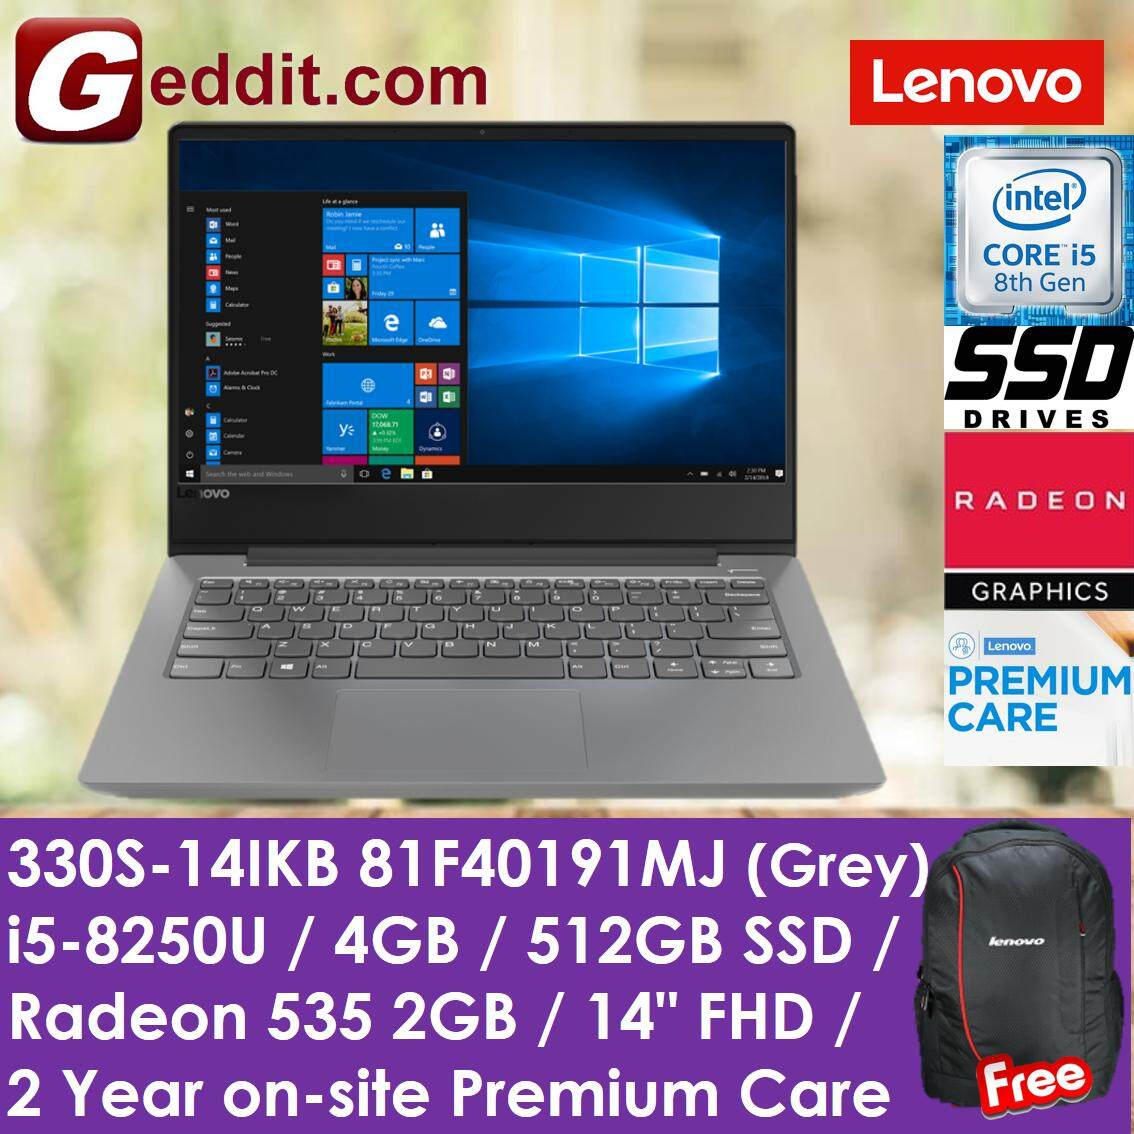 LENOVO 330S-14IKB 81F40191MJ NOTEBOOK (I5-8250U,4GB,512GB SSD,RADEON 535-2GB,14,W10,GREY) FREE LENOVO BACKPACK Malaysia